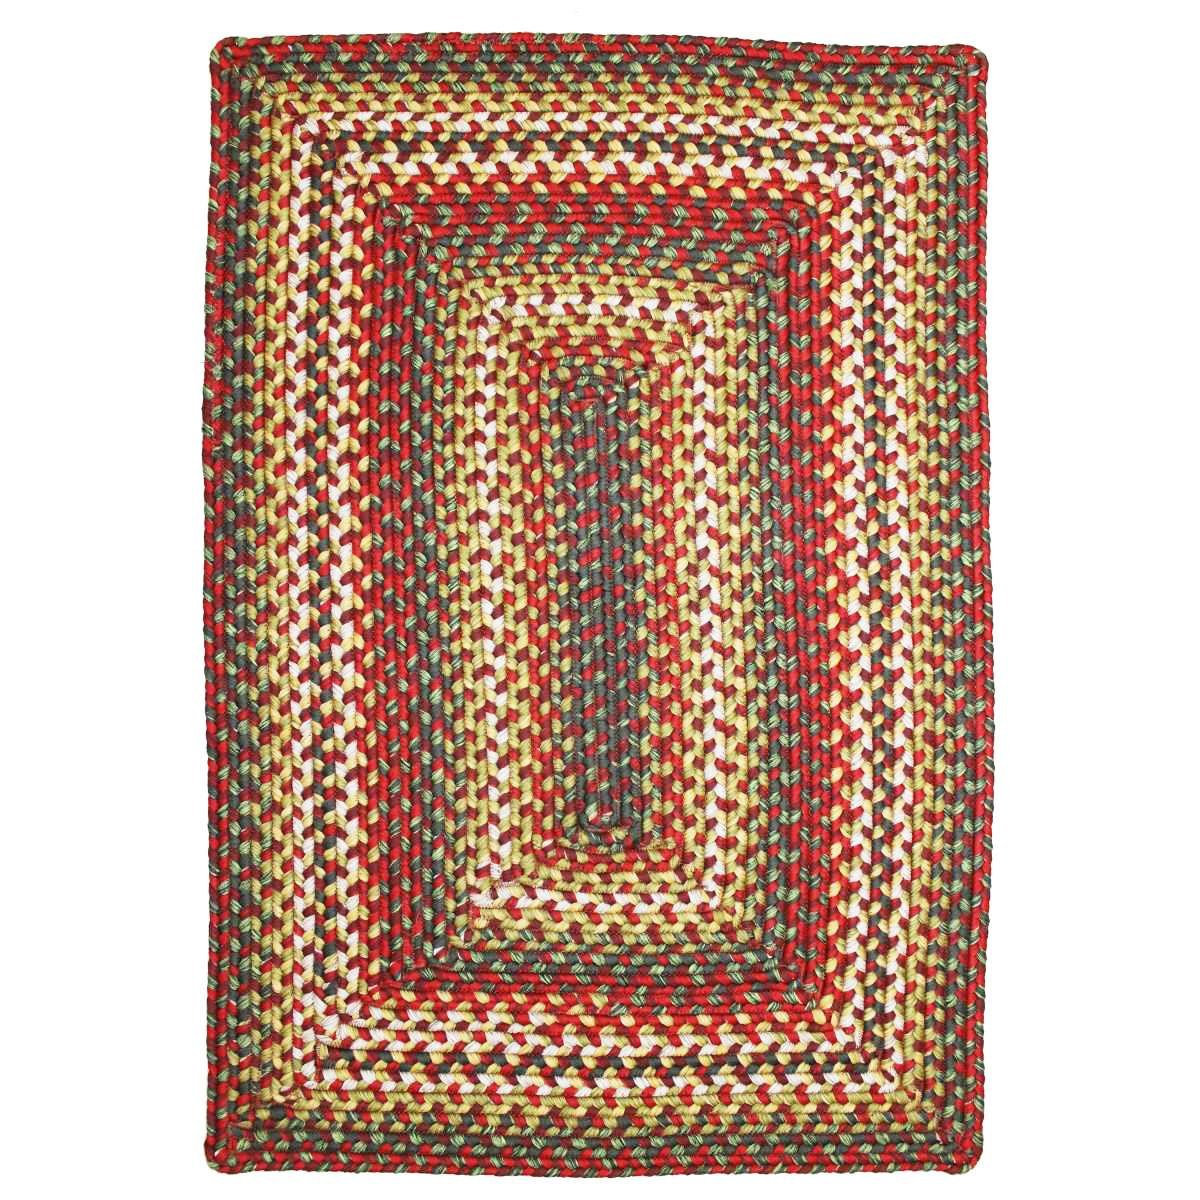 Homespice Decor Sunrose Red Indoor Outdoor Rug